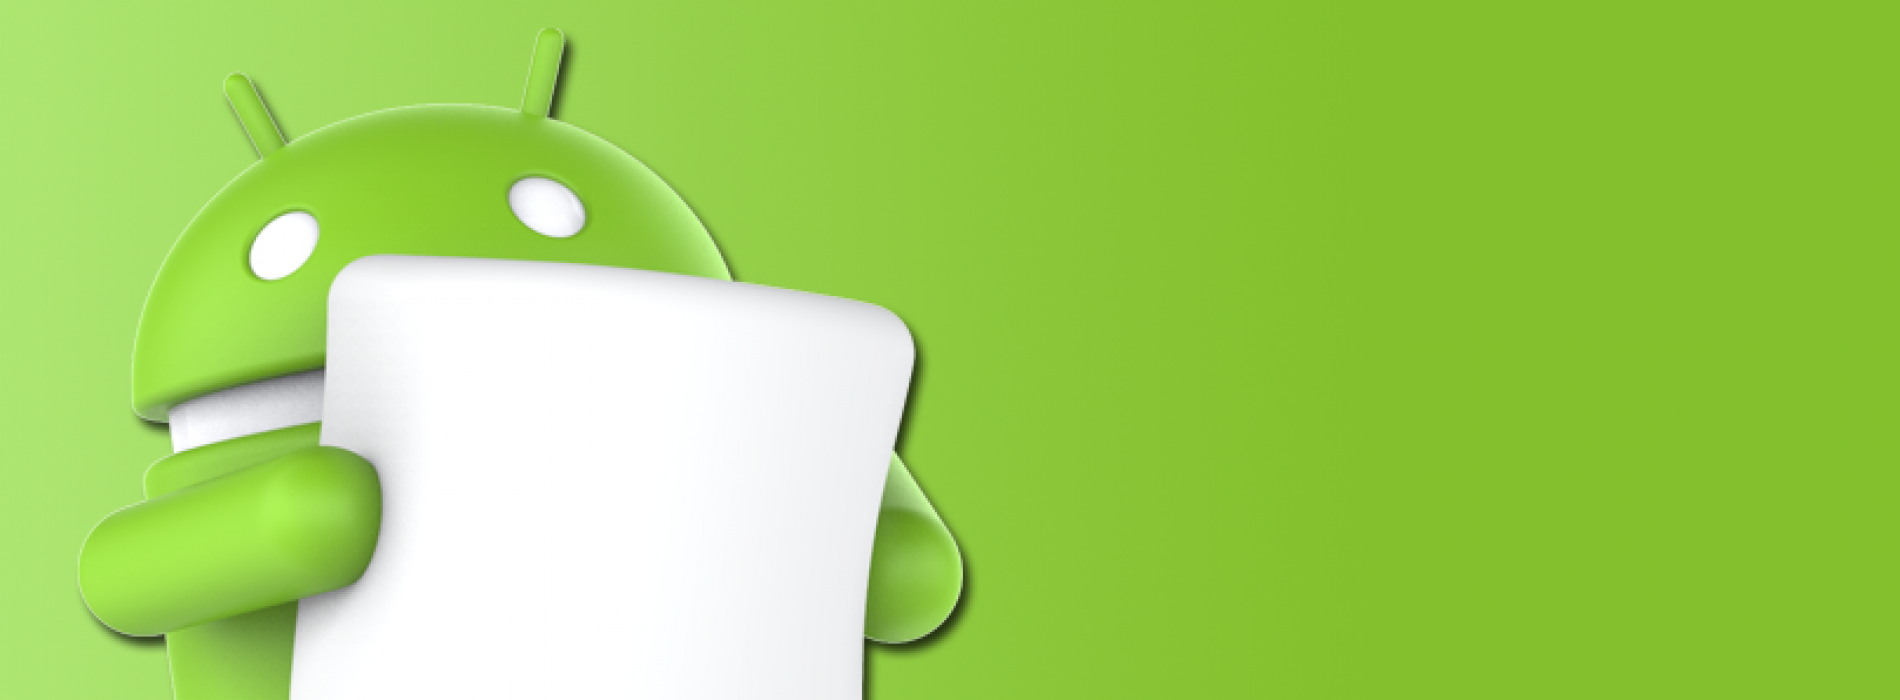 Heres all the Android Marshmallow wallpapers ready for download 1900x700